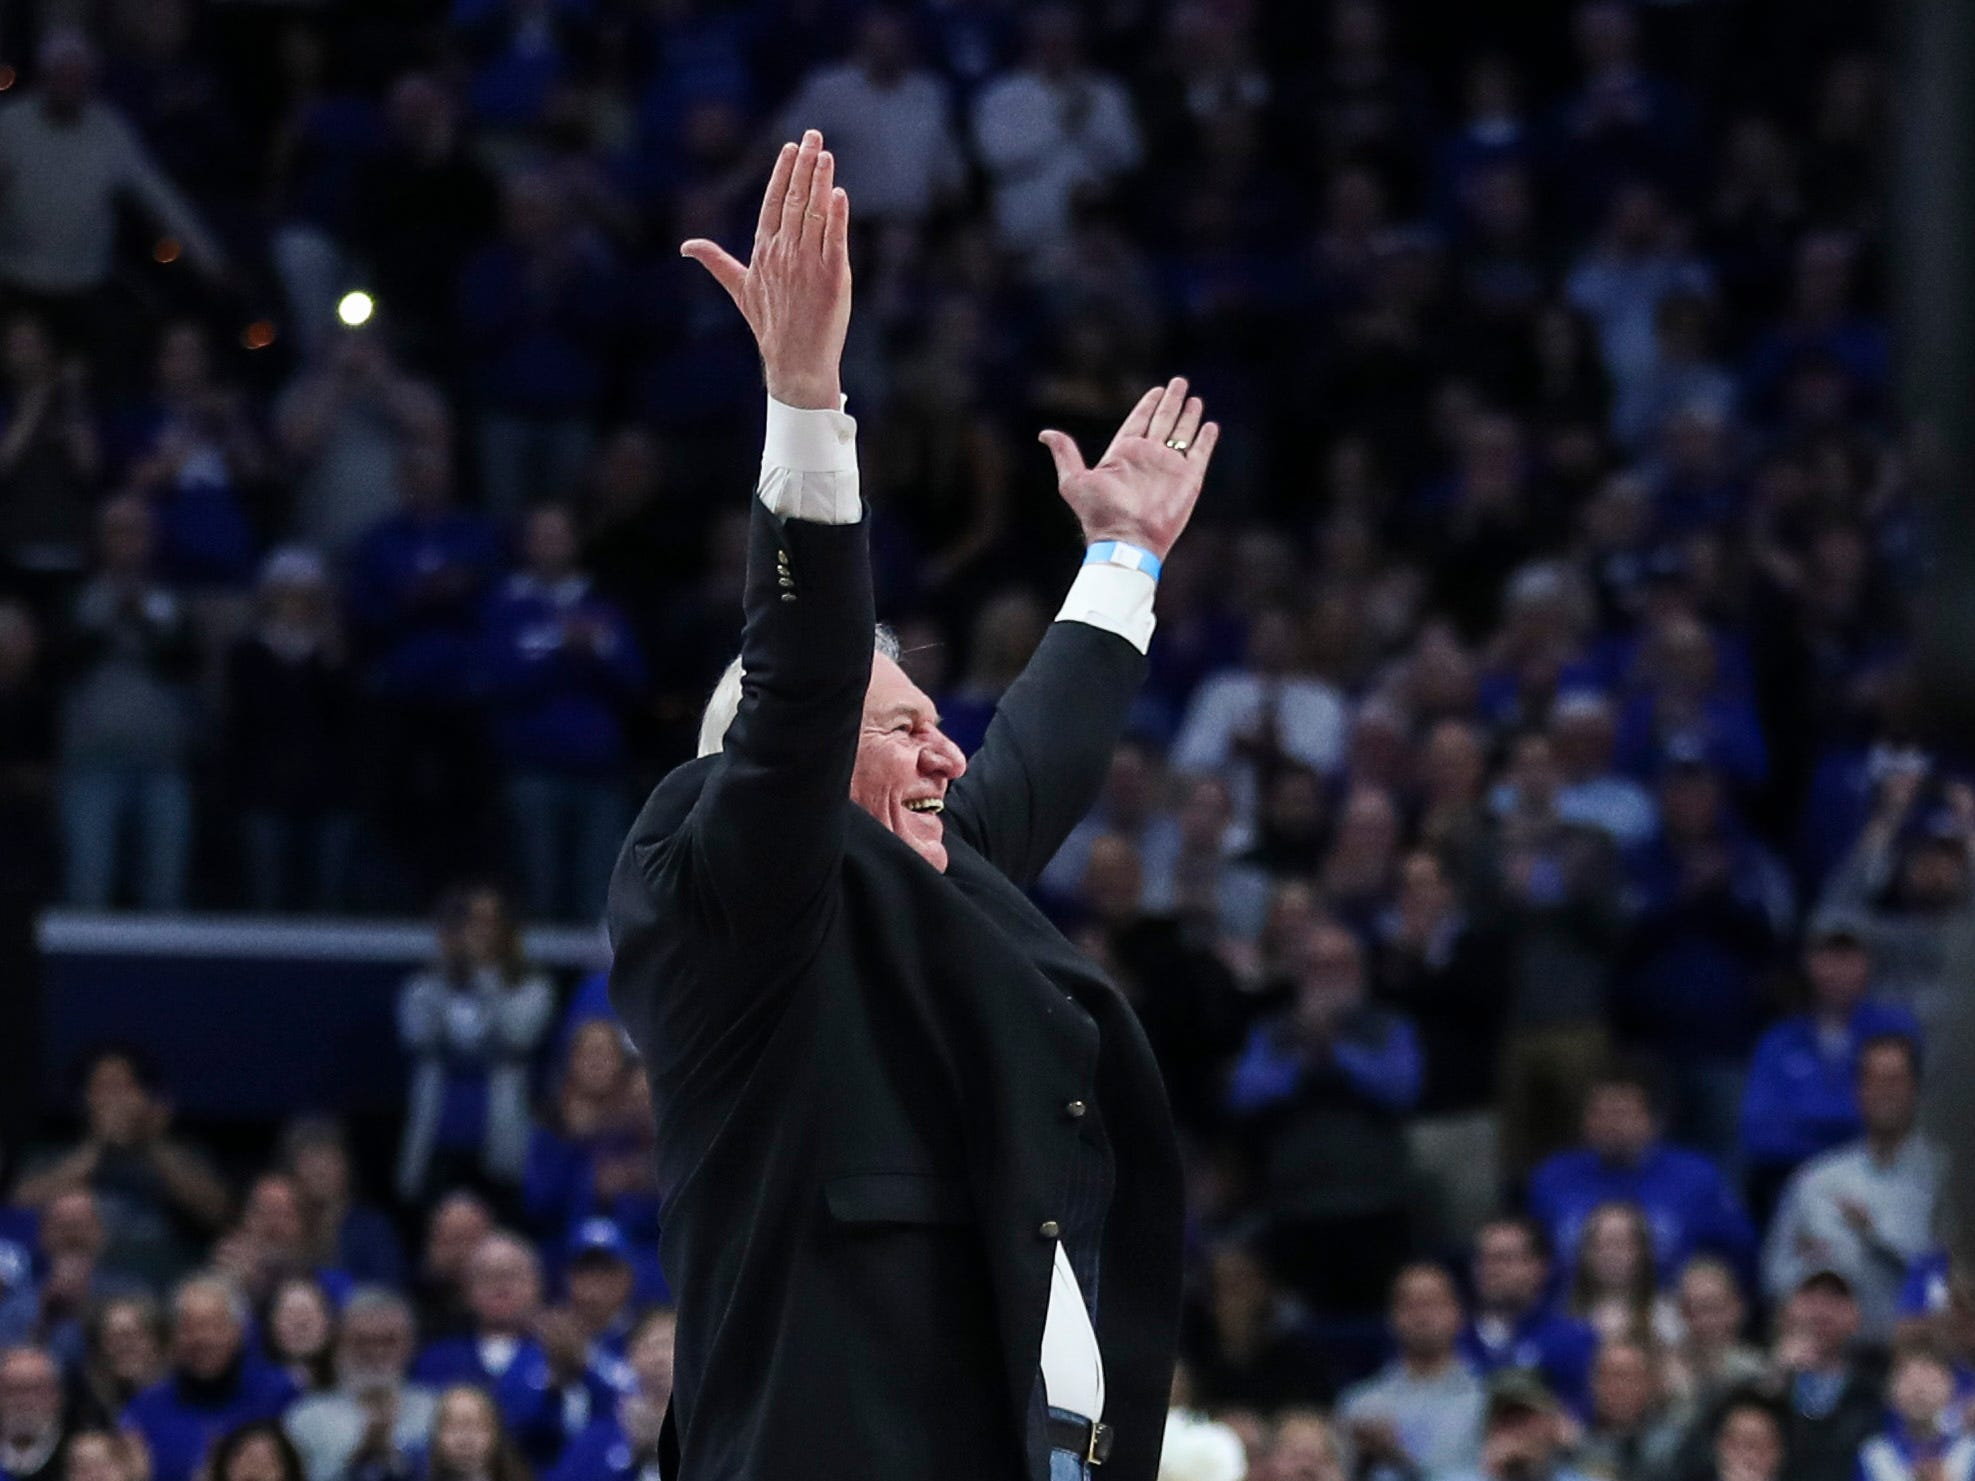 Former Kentucky and NBA player Dan Issel was the Y in KENTUCKY during a timeout in the second half game against Texas A&M Tuesday, January 8, 2019.